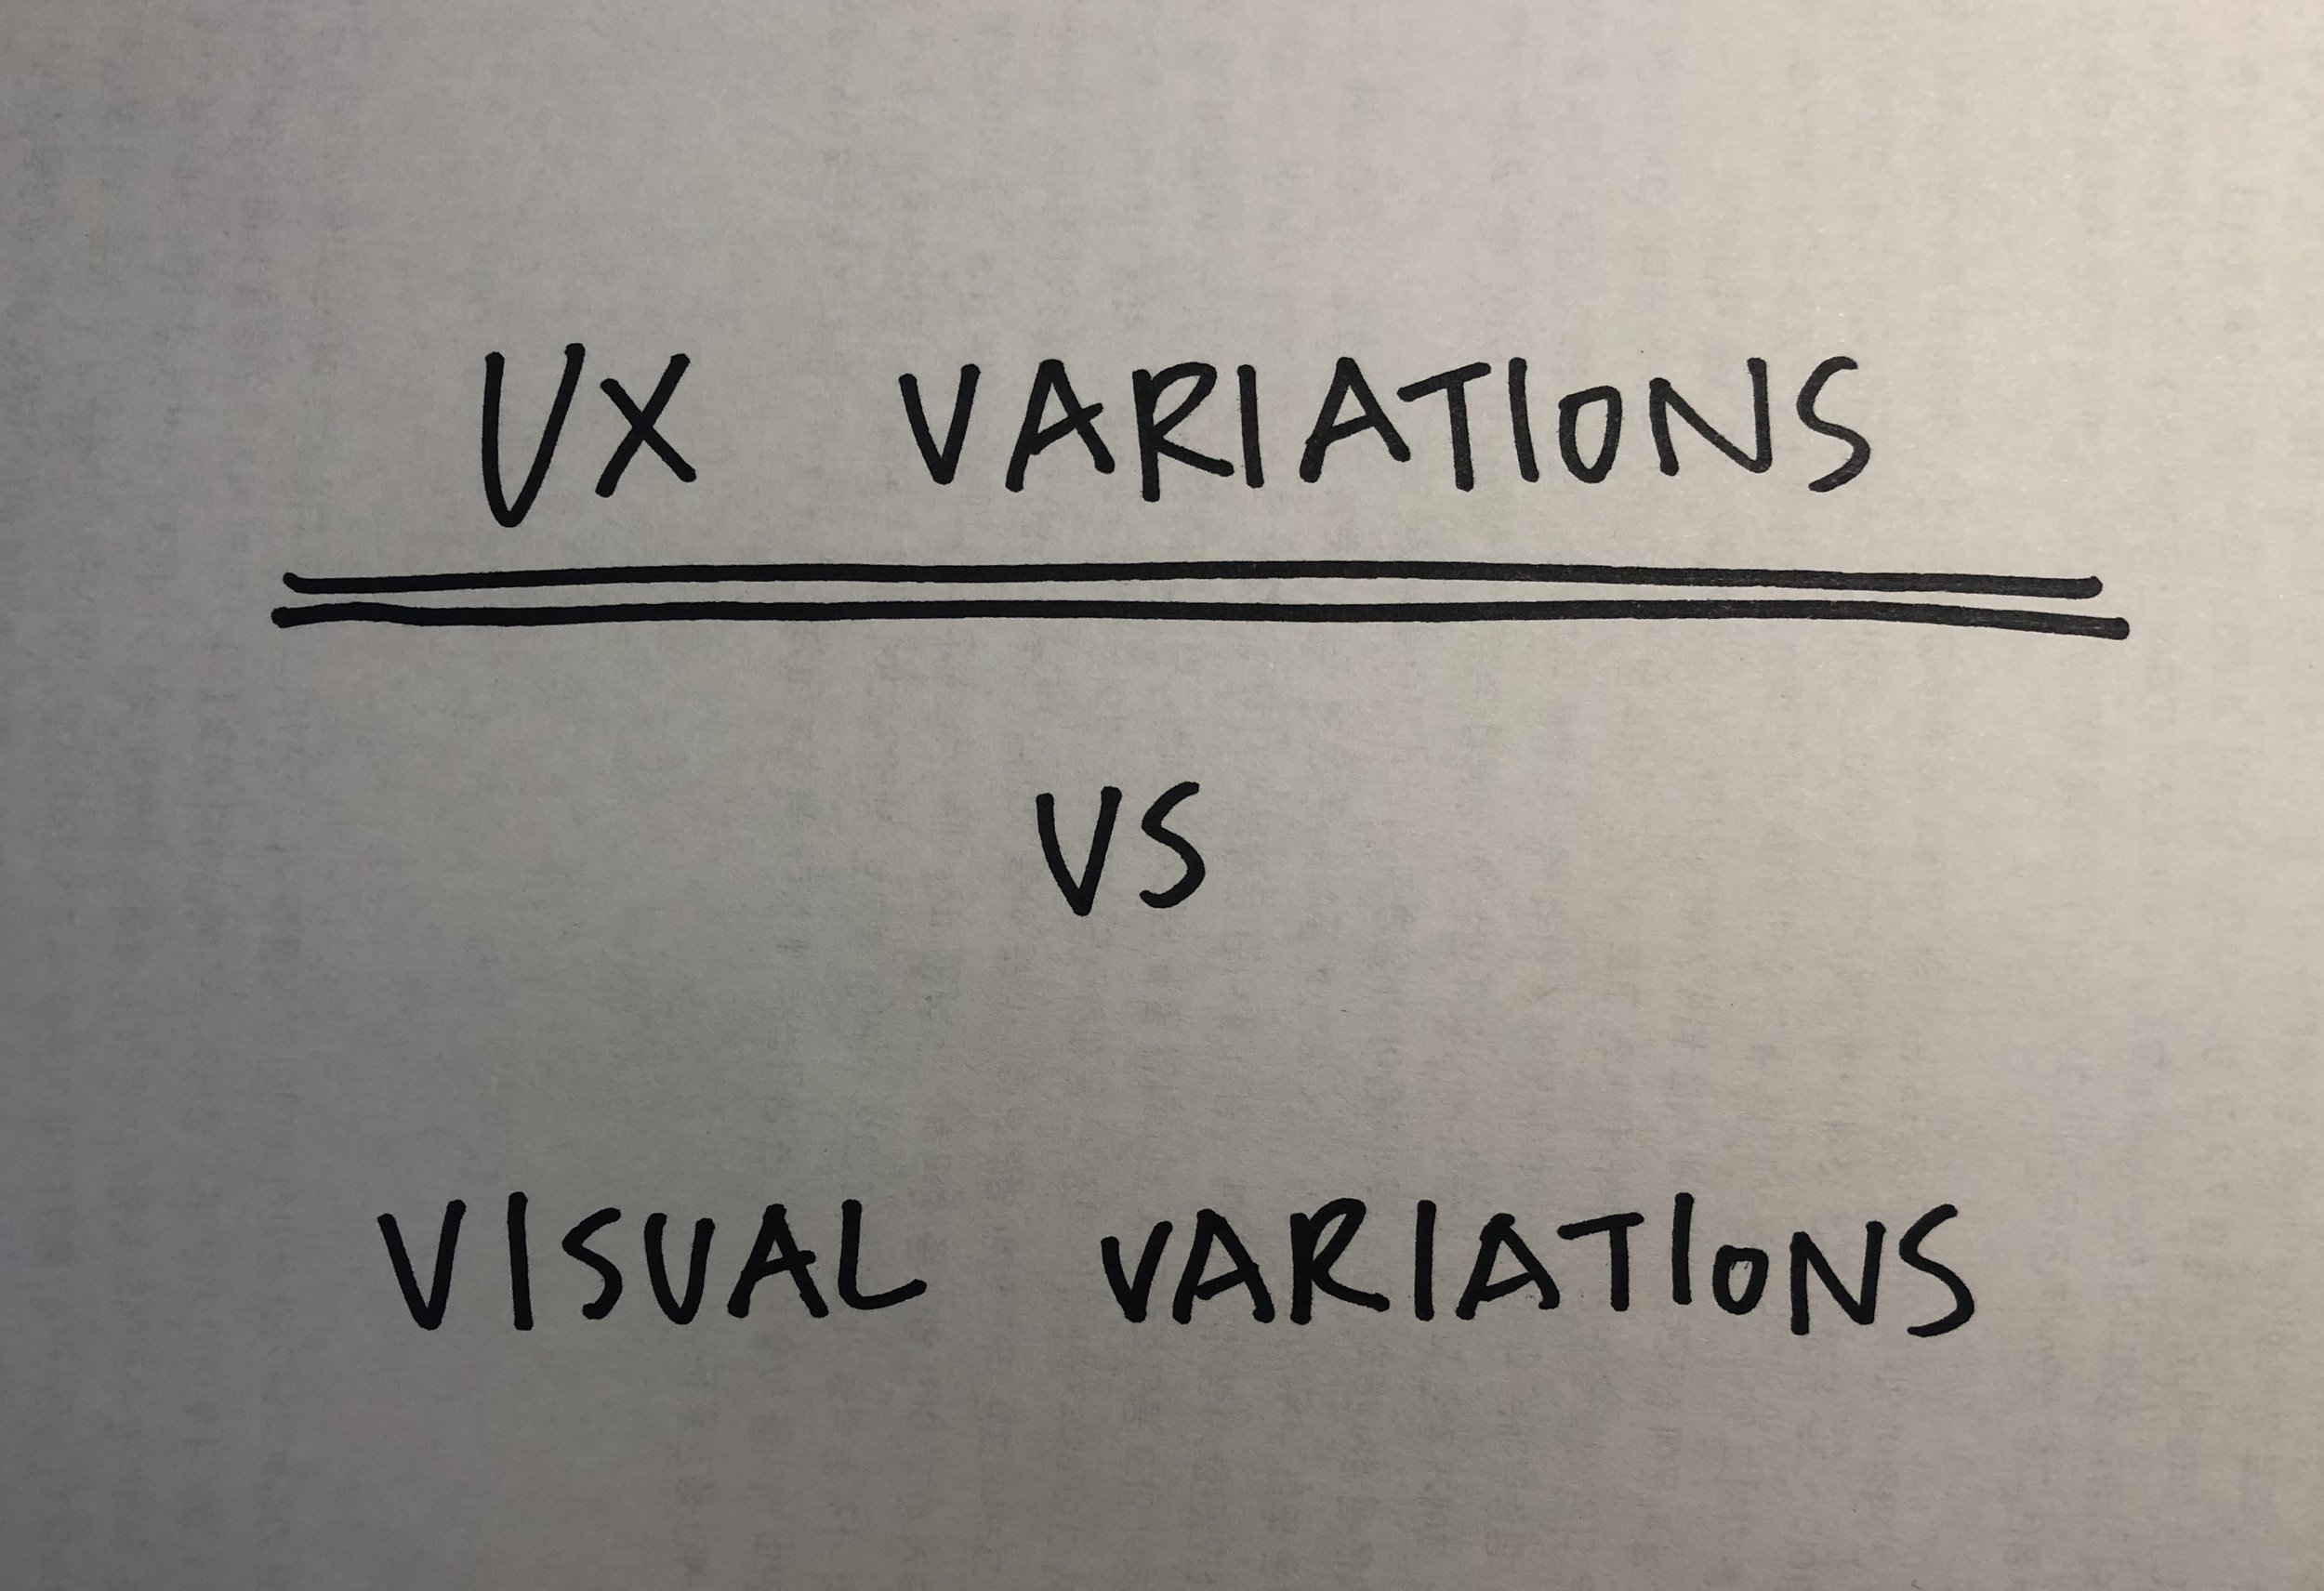 User Experience vs User Interface - Wednesday, April 24, 2019• UX variations should include the variations of experiences. Think 360º experiences from diverse perspectives.